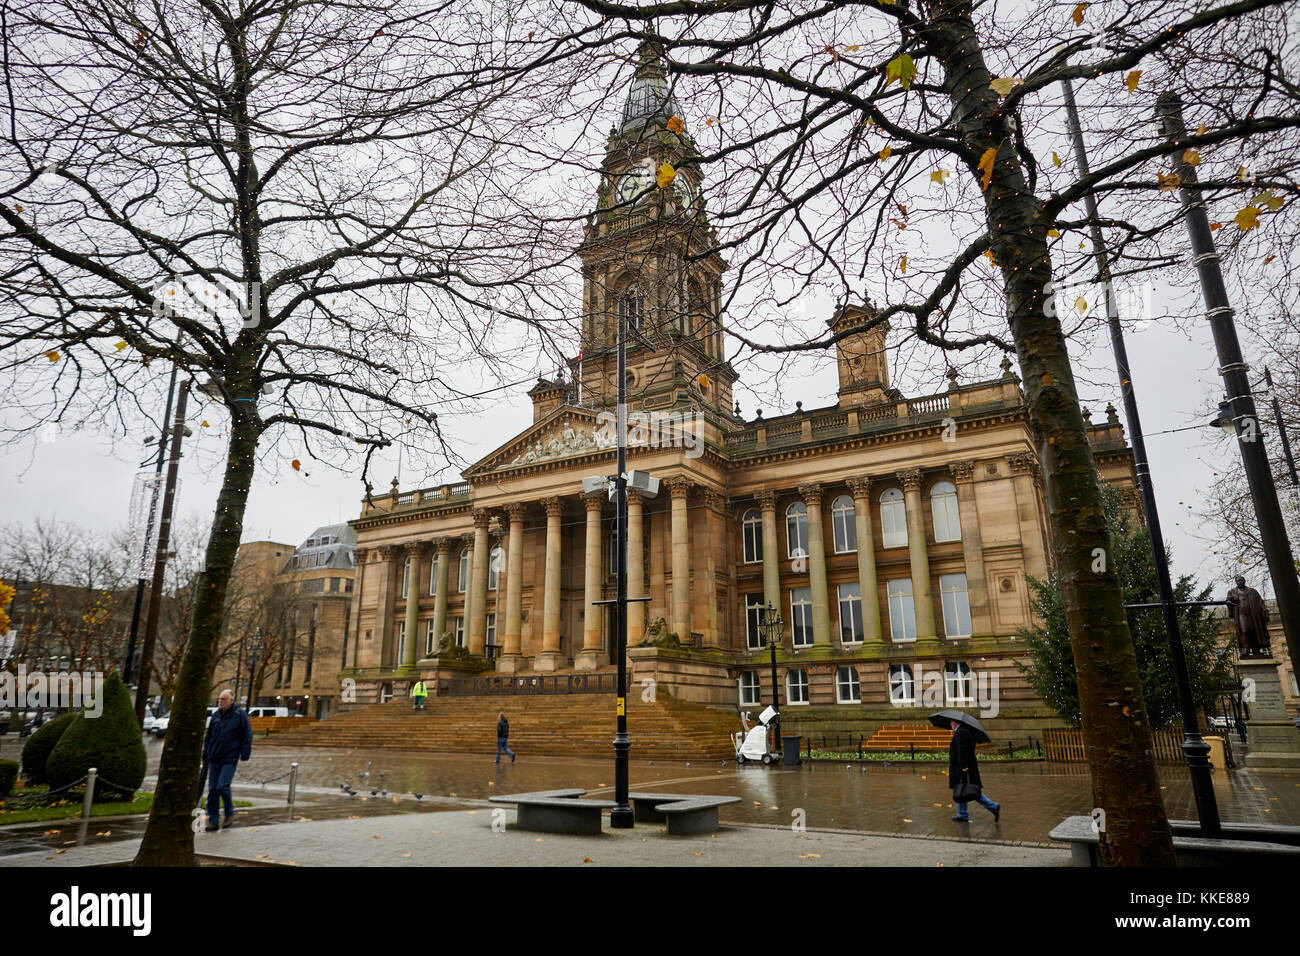 Rain at Bolton Town Hall Victoria Square a grade II* listed building  neoclassical style in the form of a temple - Stock Image